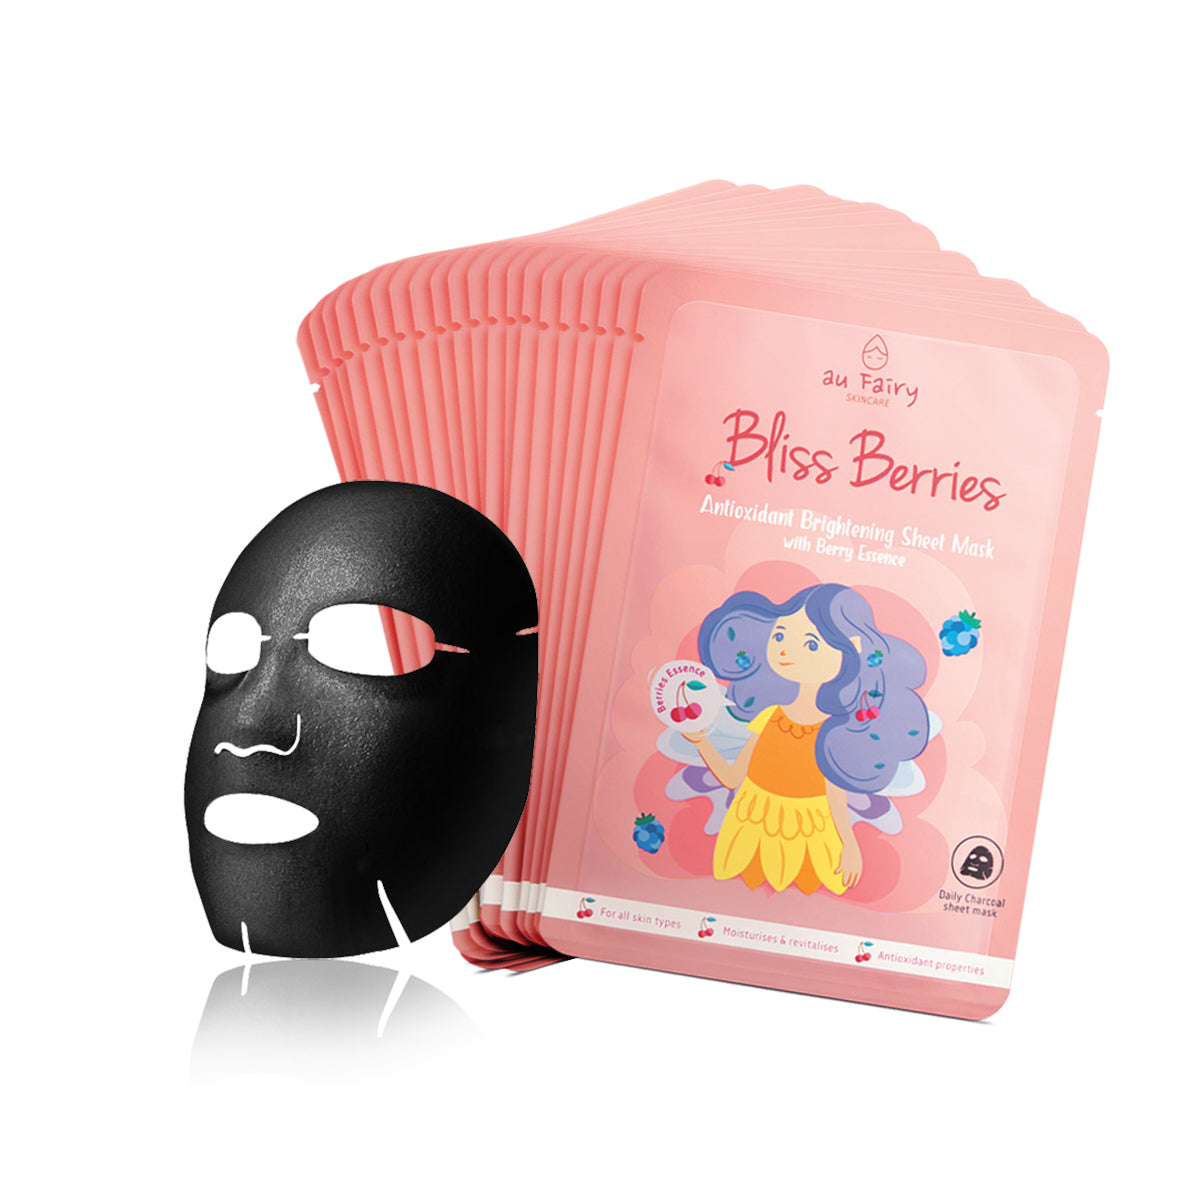 BUY 1 FREE 1: AUFAIRY Bliss Berries Brightening Mask - Berries Essence